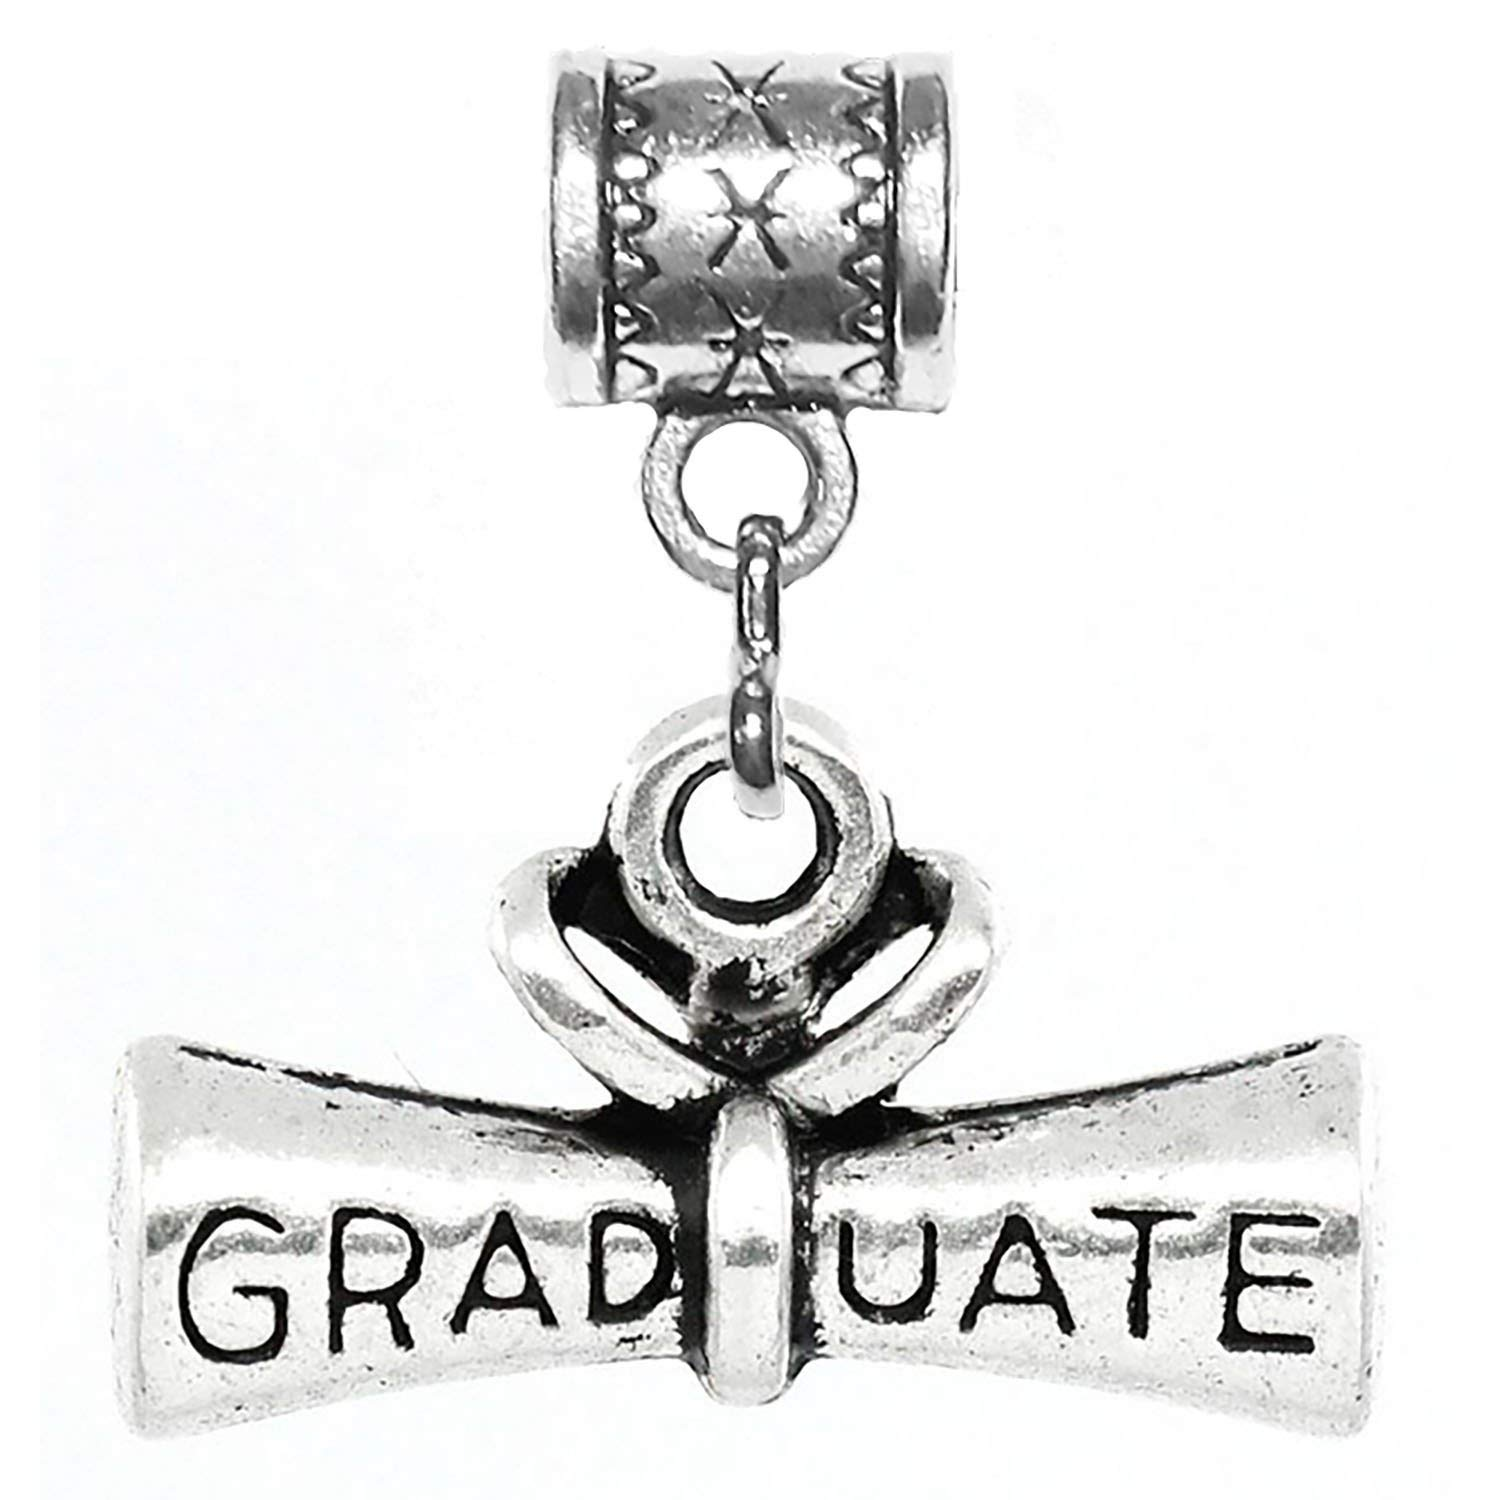 """""""Graduate diploma charm"""" is a Tibetan Silver Hanging charm for large hole style snake chain bracelets, or add to a neck chain, pendant necklace or key chain."""